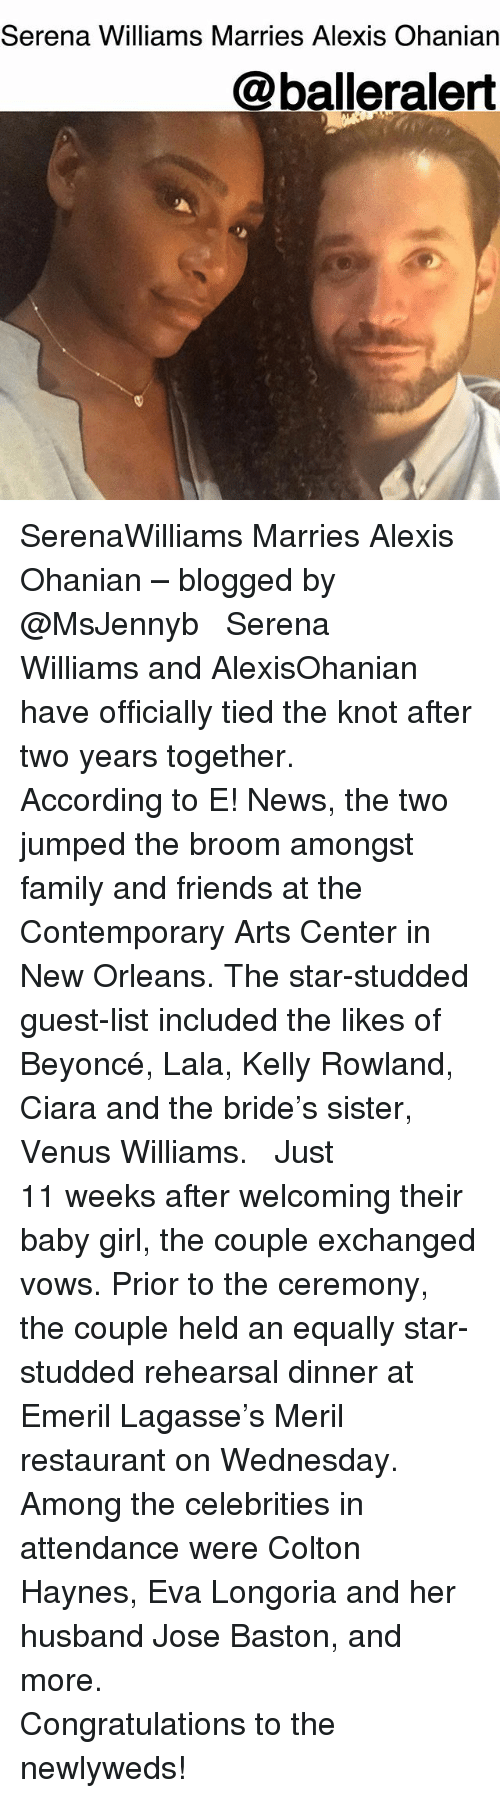 Beyonce, Ciara, and Family: Serena Williams Marries Alexis Ohanian  @balleralert SerenaWilliams Marries Alexis Ohanian – blogged by @MsJennyb ⠀⠀⠀⠀⠀⠀⠀ ⠀⠀⠀⠀⠀⠀⠀ Serena Williams and AlexisOhanian have officially tied the knot after two years together. ⠀⠀⠀⠀⠀⠀⠀ ⠀⠀⠀⠀⠀⠀⠀ According to E! News, the two jumped the broom amongst family and friends at the Contemporary Arts Center in New Orleans. The star-studded guest-list included the likes of Beyoncé, Lala, Kelly Rowland, Ciara and the bride's sister, Venus Williams. ⠀⠀⠀⠀⠀⠀⠀ ⠀⠀⠀⠀⠀⠀⠀ Just 11 weeks after welcoming their baby girl, the couple exchanged vows. Prior to the ceremony, the couple held an equally star-studded rehearsal dinner at Emeril Lagasse's Meril restaurant on Wednesday. Among the celebrities in attendance were Colton Haynes, Eva Longoria and her husband Jose Baston, and more. ⠀⠀⠀⠀⠀⠀⠀ ⠀⠀⠀⠀⠀⠀⠀ Congratulations to the newlyweds!